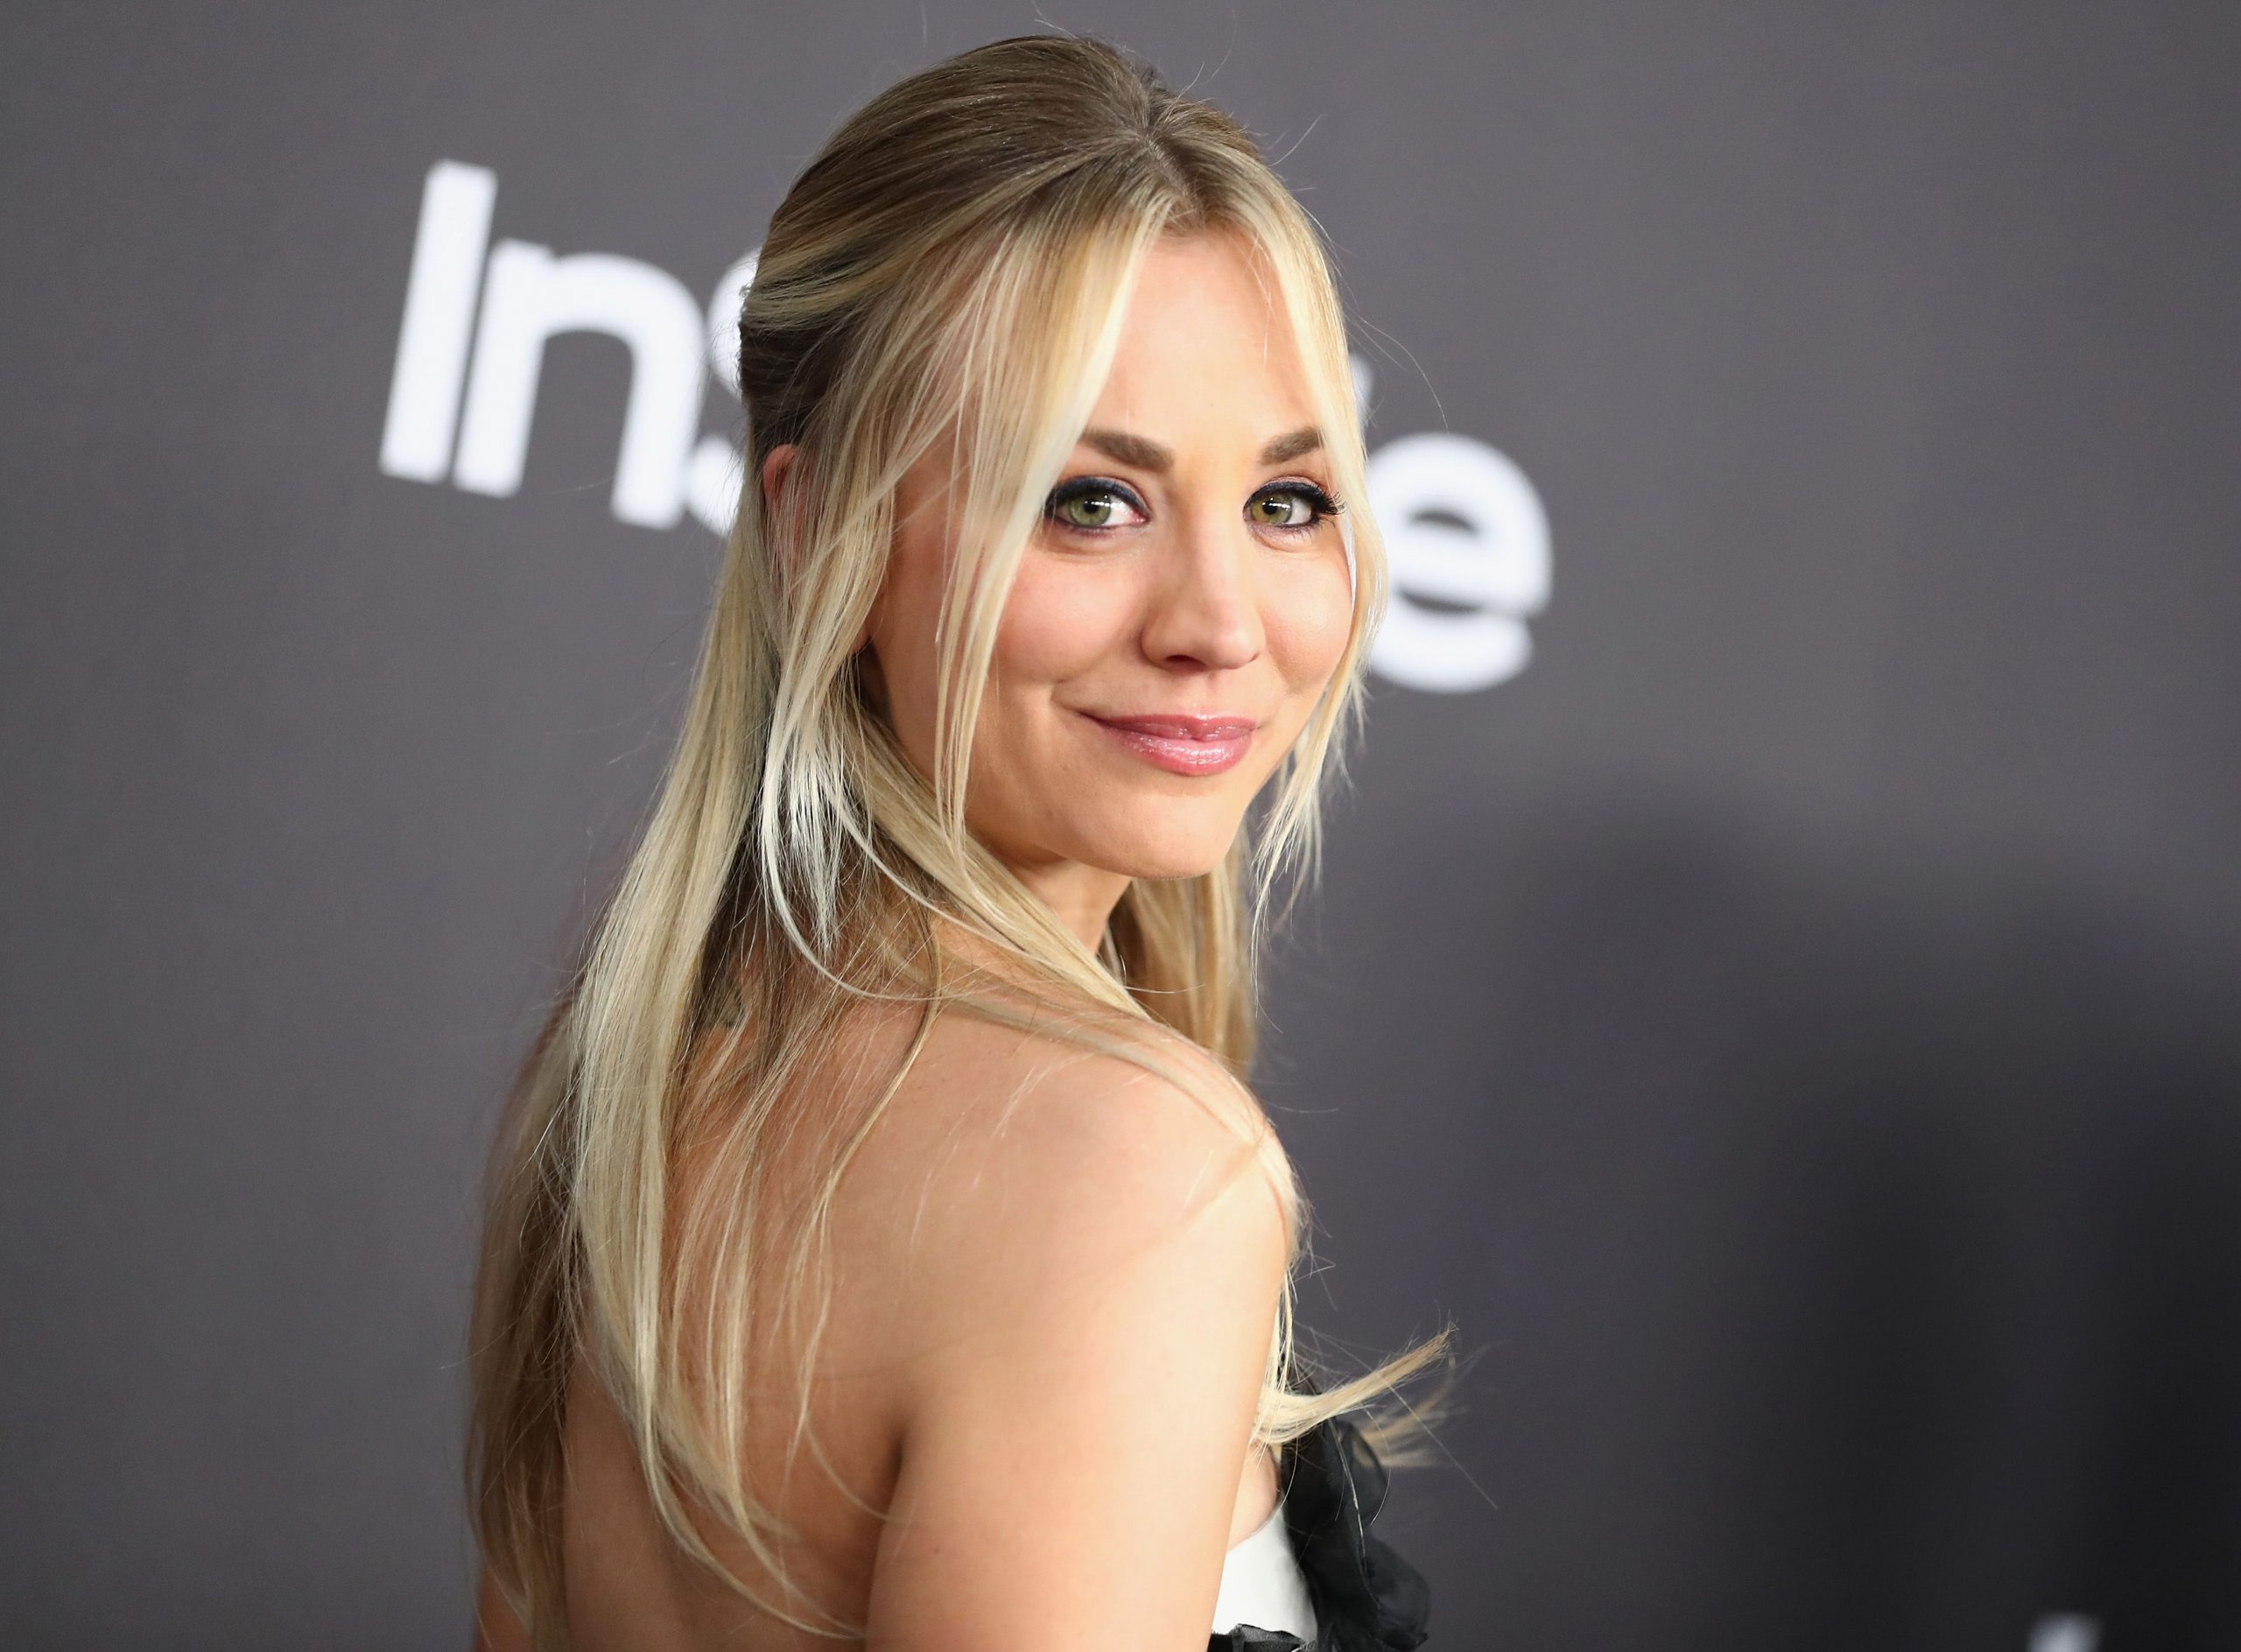 Kaley Cuoco to star in Flight Attendant Drama Series